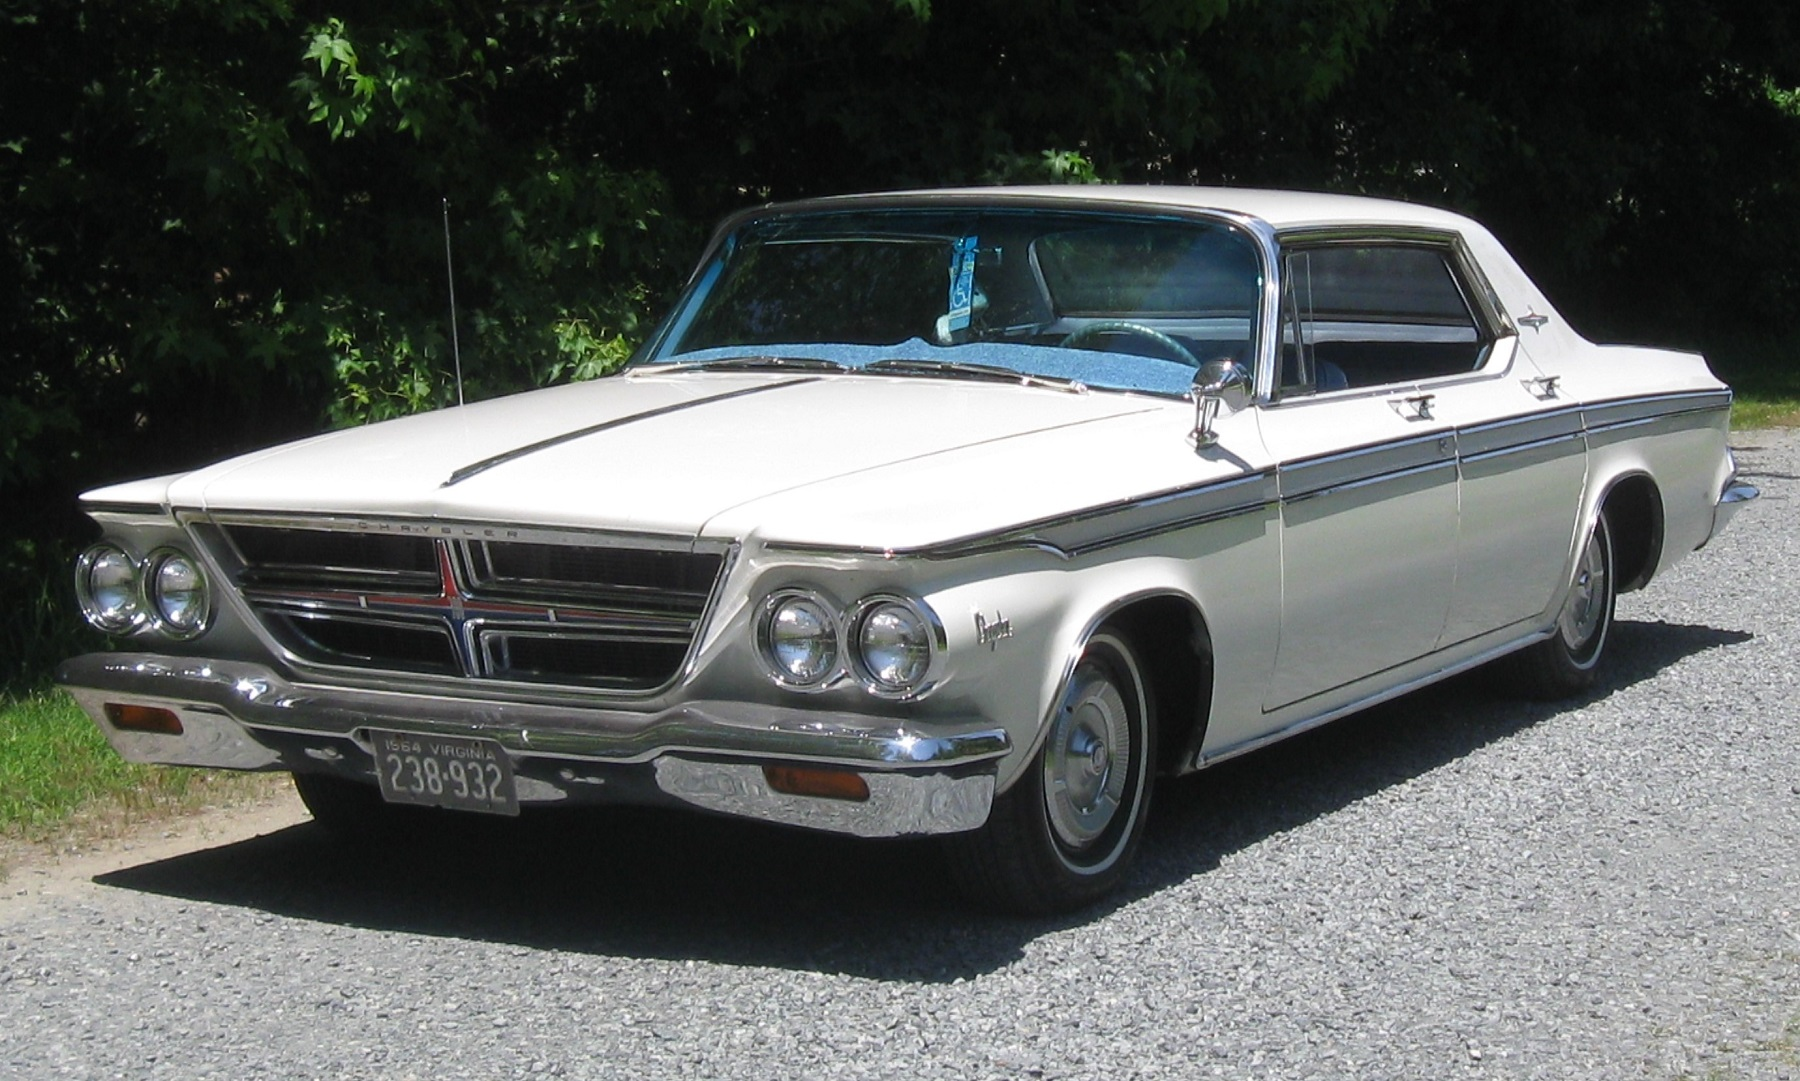 1964 chrysler 300 a classic you can drive classic. Black Bedroom Furniture Sets. Home Design Ideas